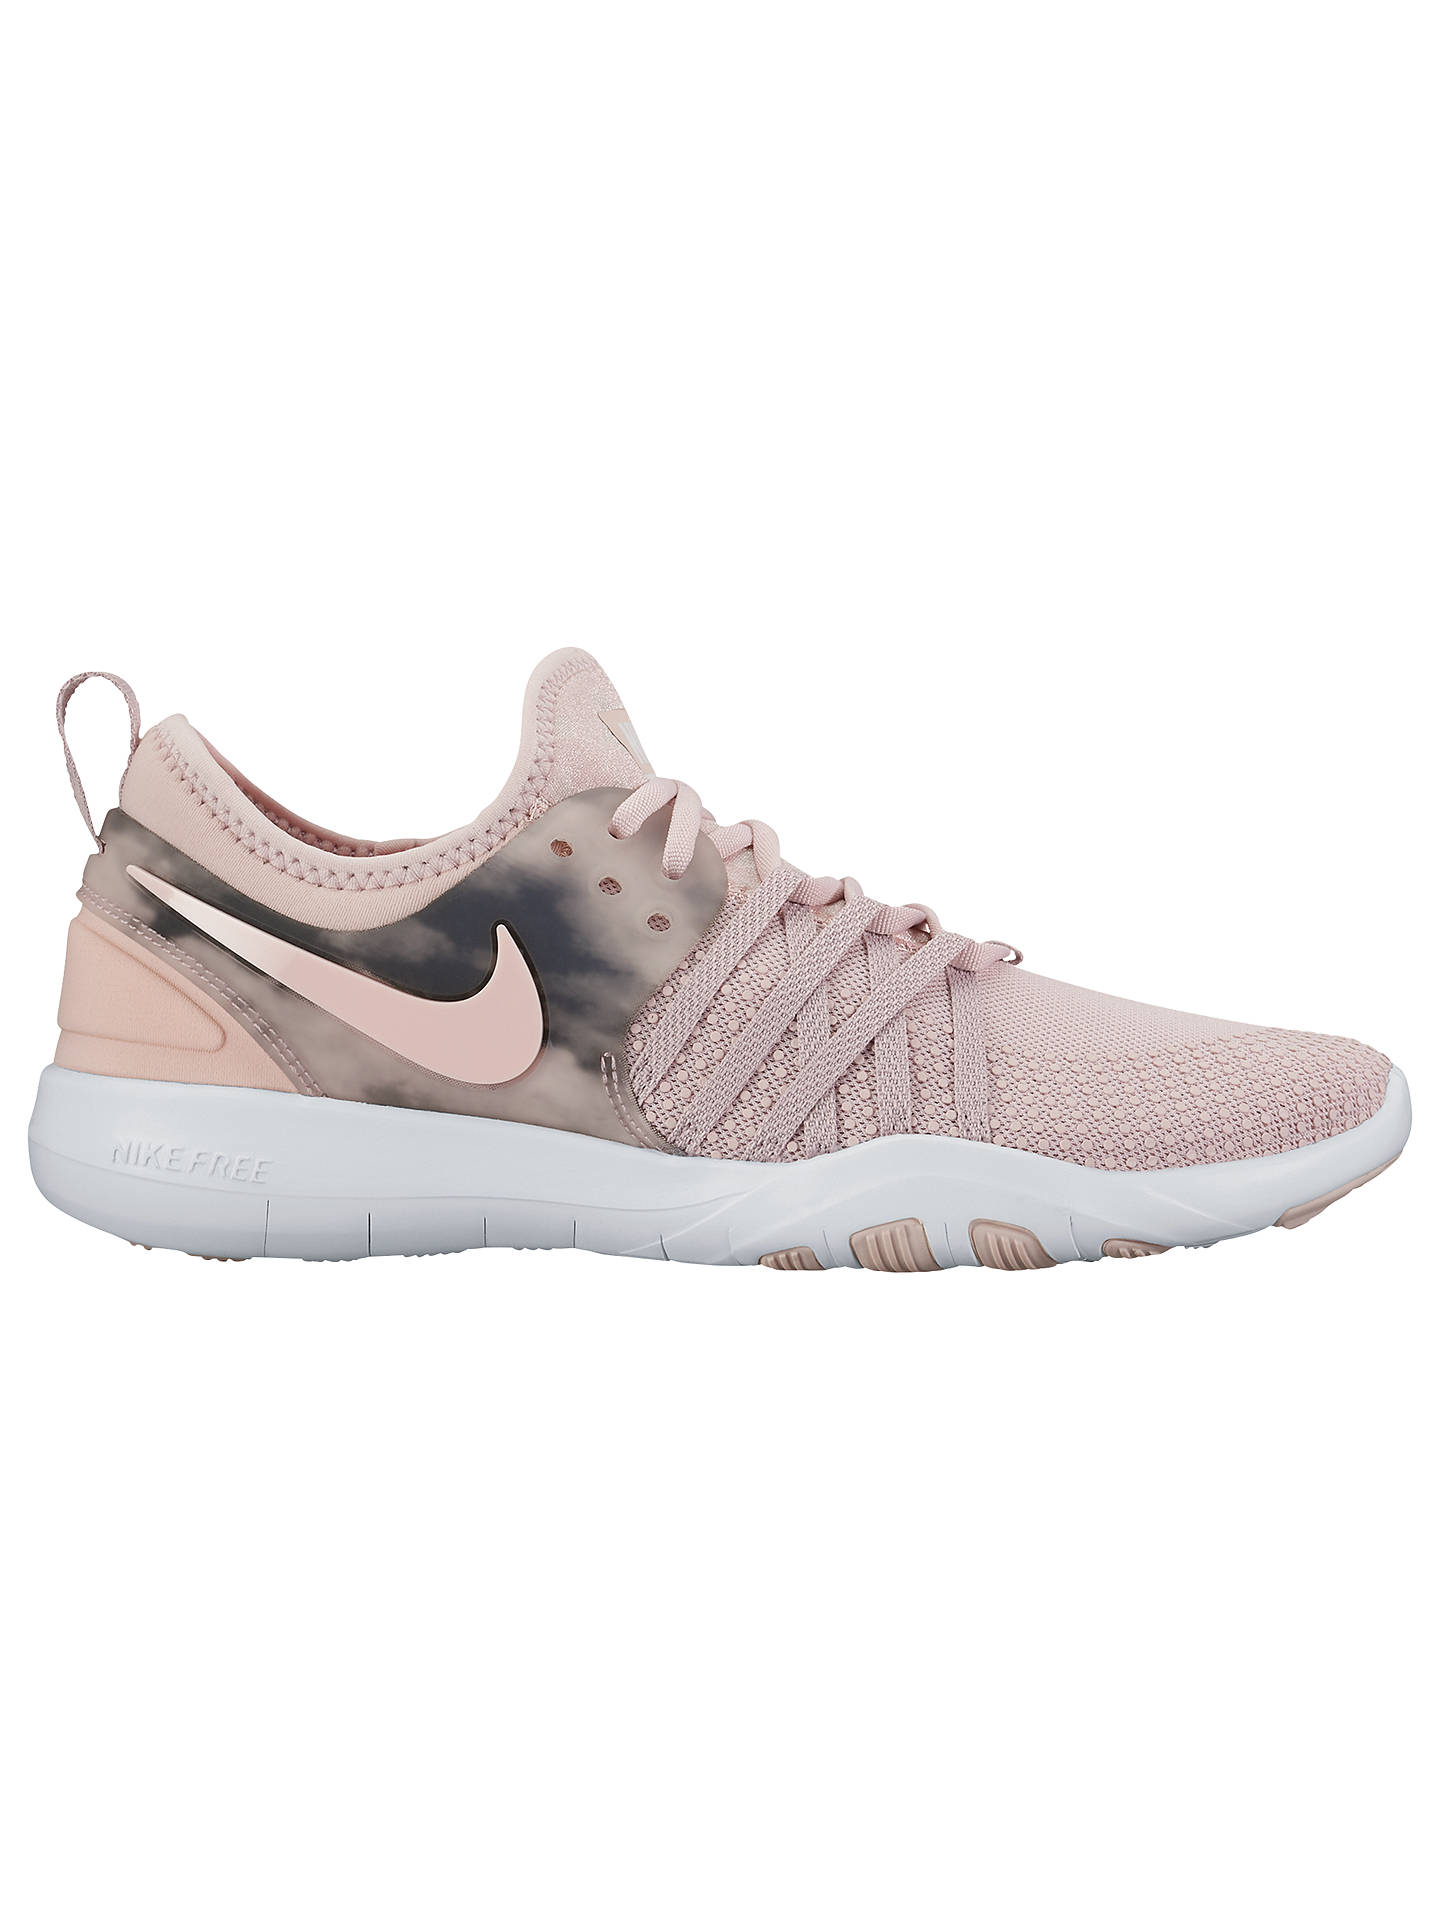 9a18163f37b1 Buy Nike Free TR 7 AMP Women s Training Shoes